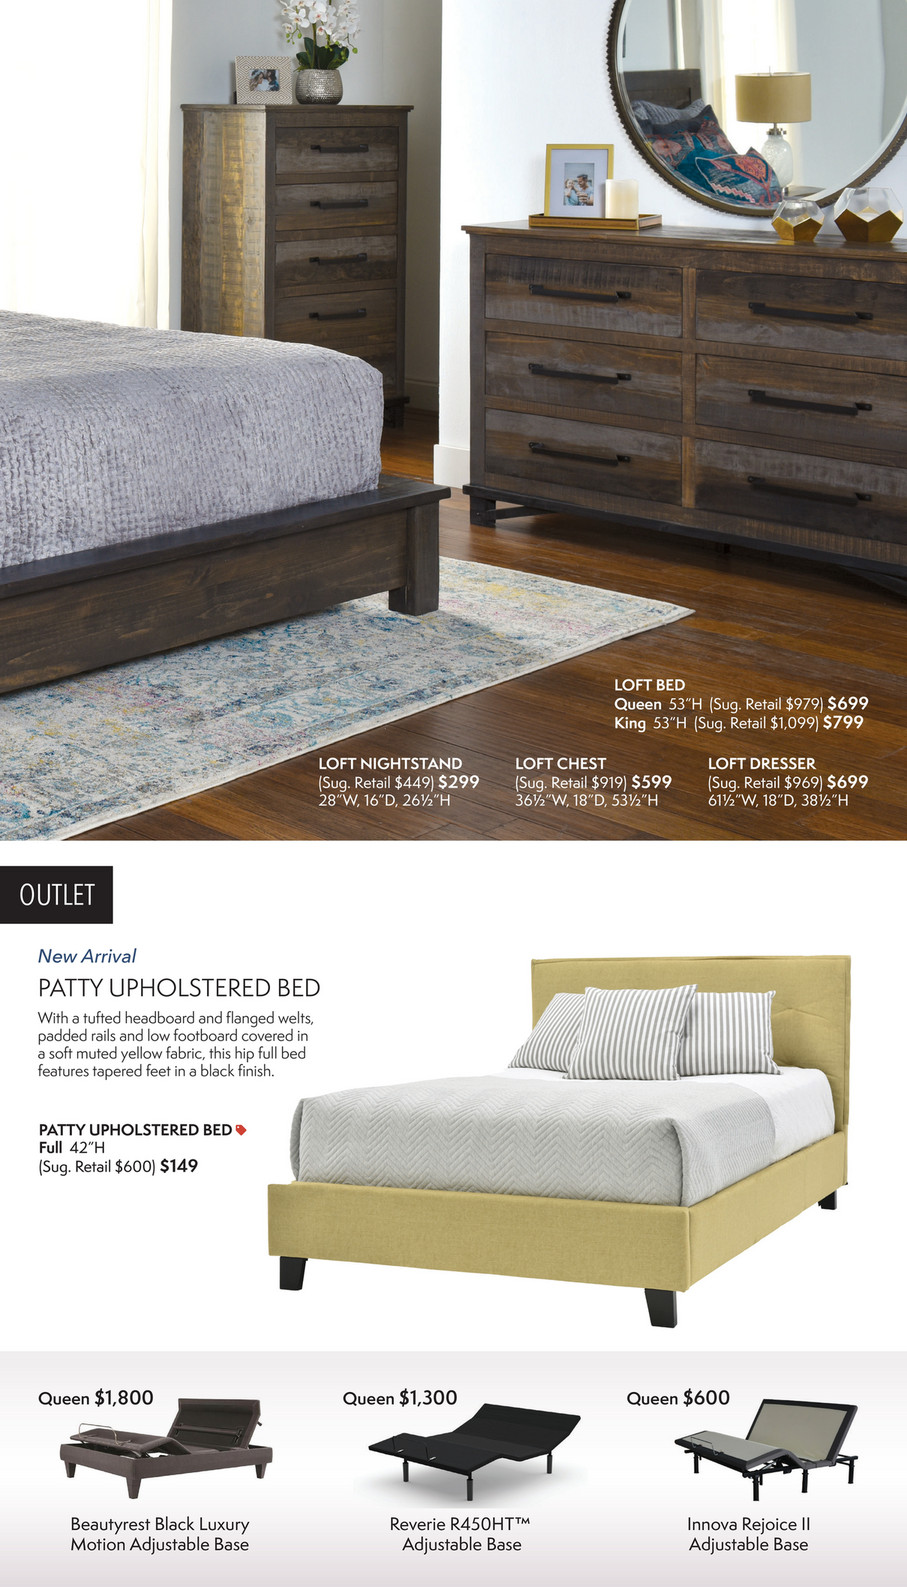 Weir S Furniture 2020 Jan Bedding For Website Page 4 5